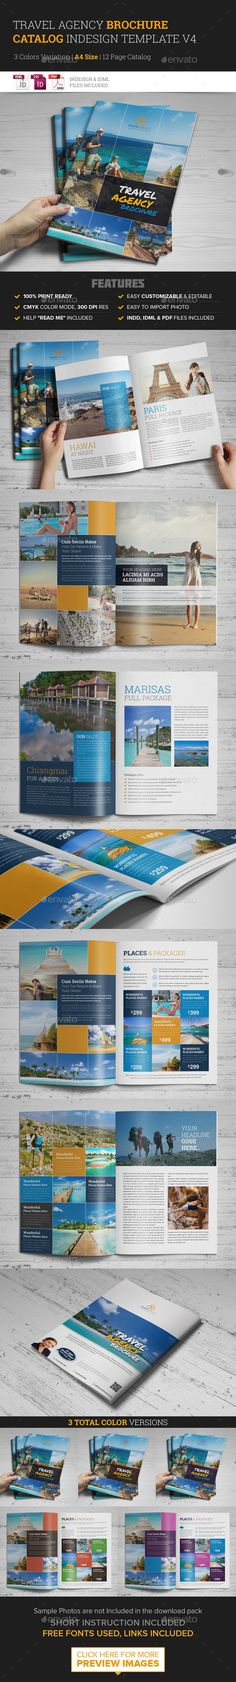 Travel Agency Brochure Catalog InDesign Template #design Download: http://graphicriver.net/item/travel-agency-brochure-catalog-indesign-template-4/10398276?ref=ksioks